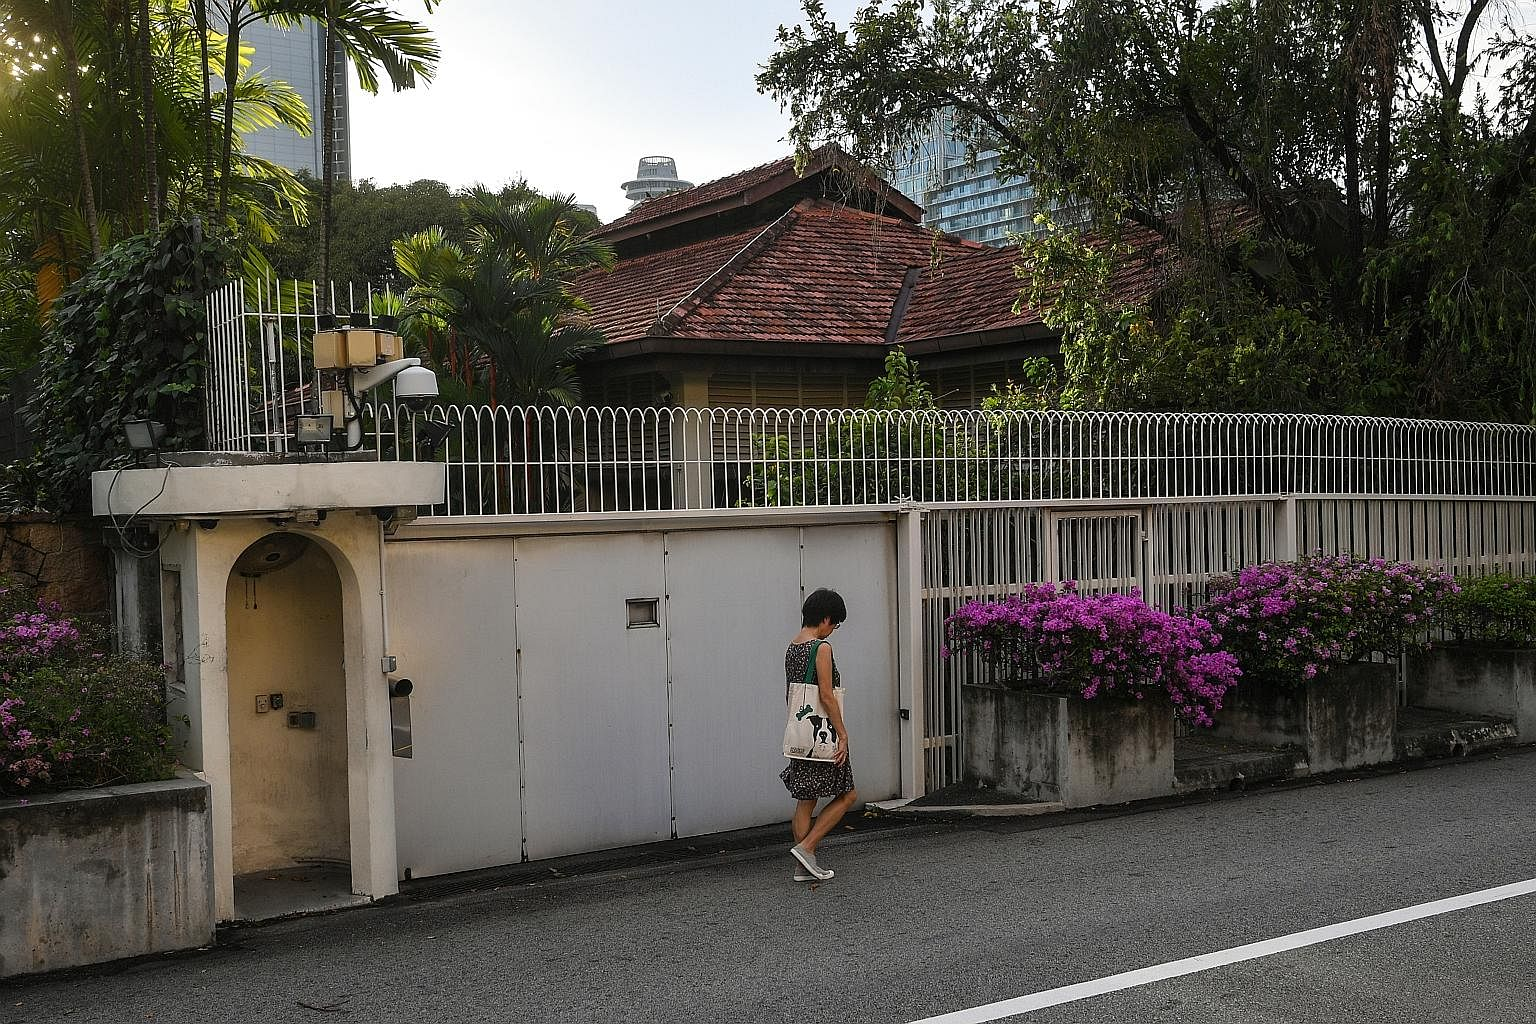 The home of former prime minister Lee Kuan Yew at 38, Oxley Road. Until and unless Dr Lee Wei Ling moves out, there is nothing for the Government to decide, says Ms Indranee Rajah, who added that it is also a principle that the current government wil